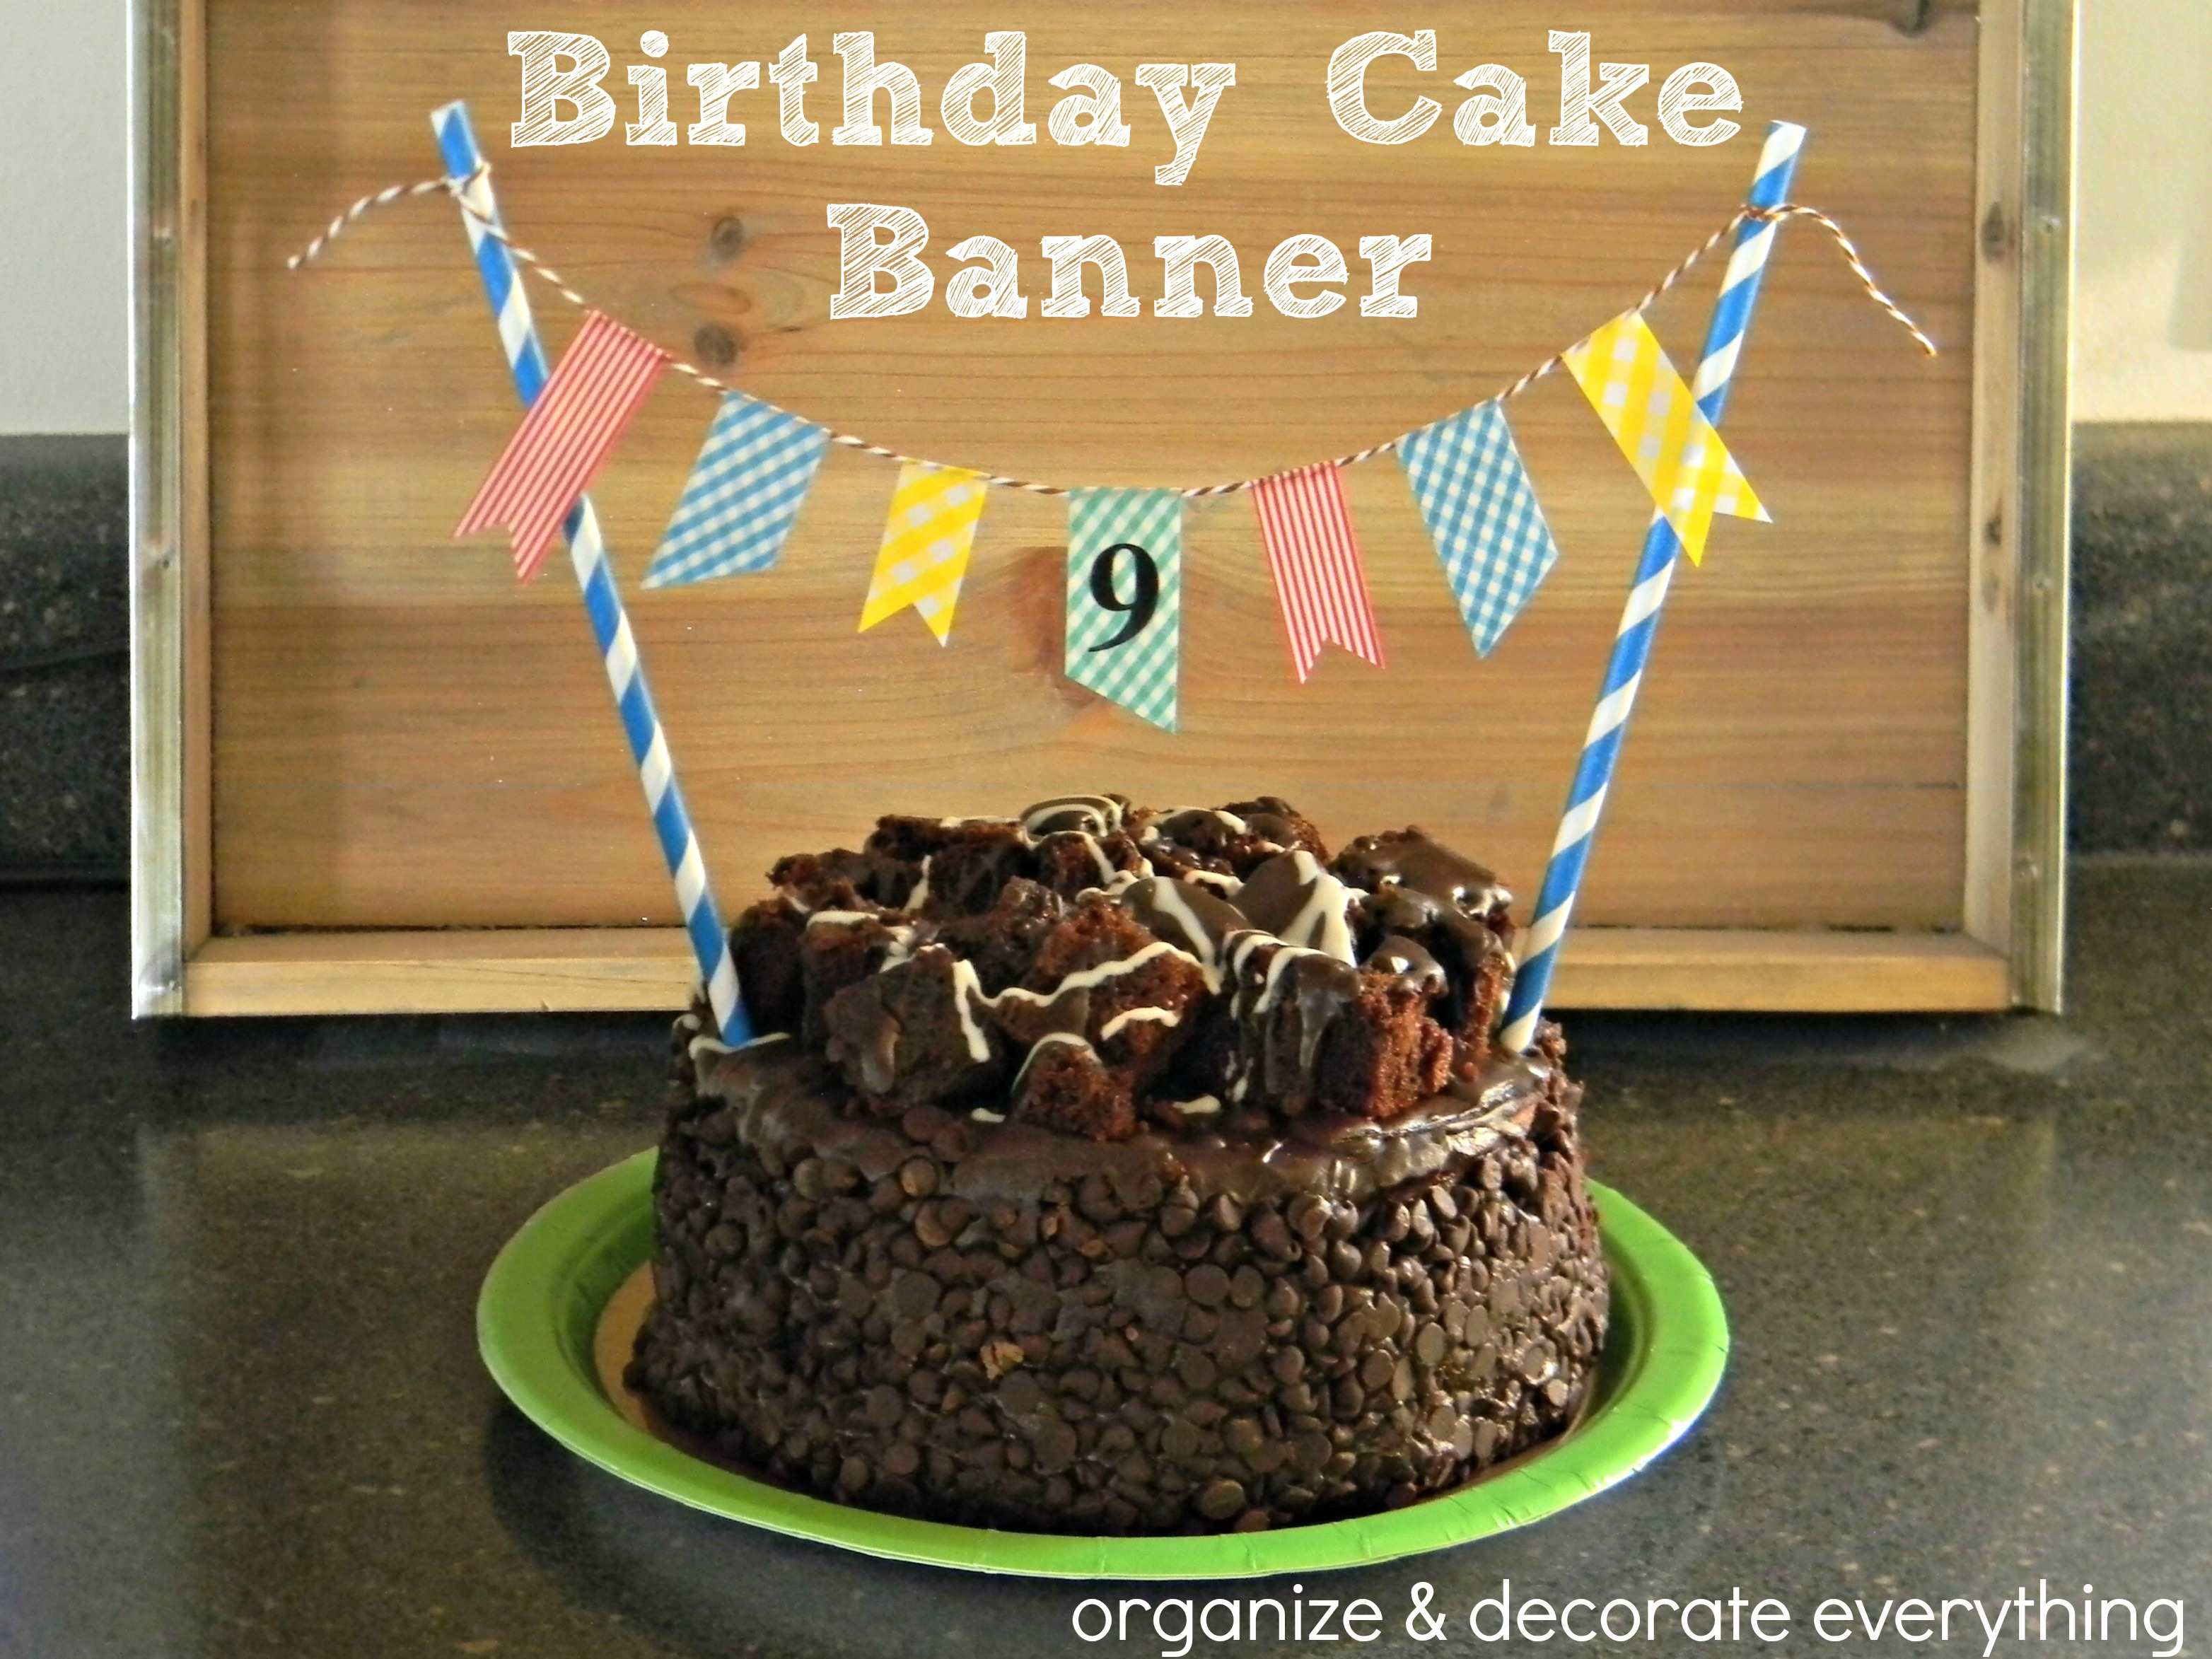 Birthday Cake Banner Organize And Decorate Everything